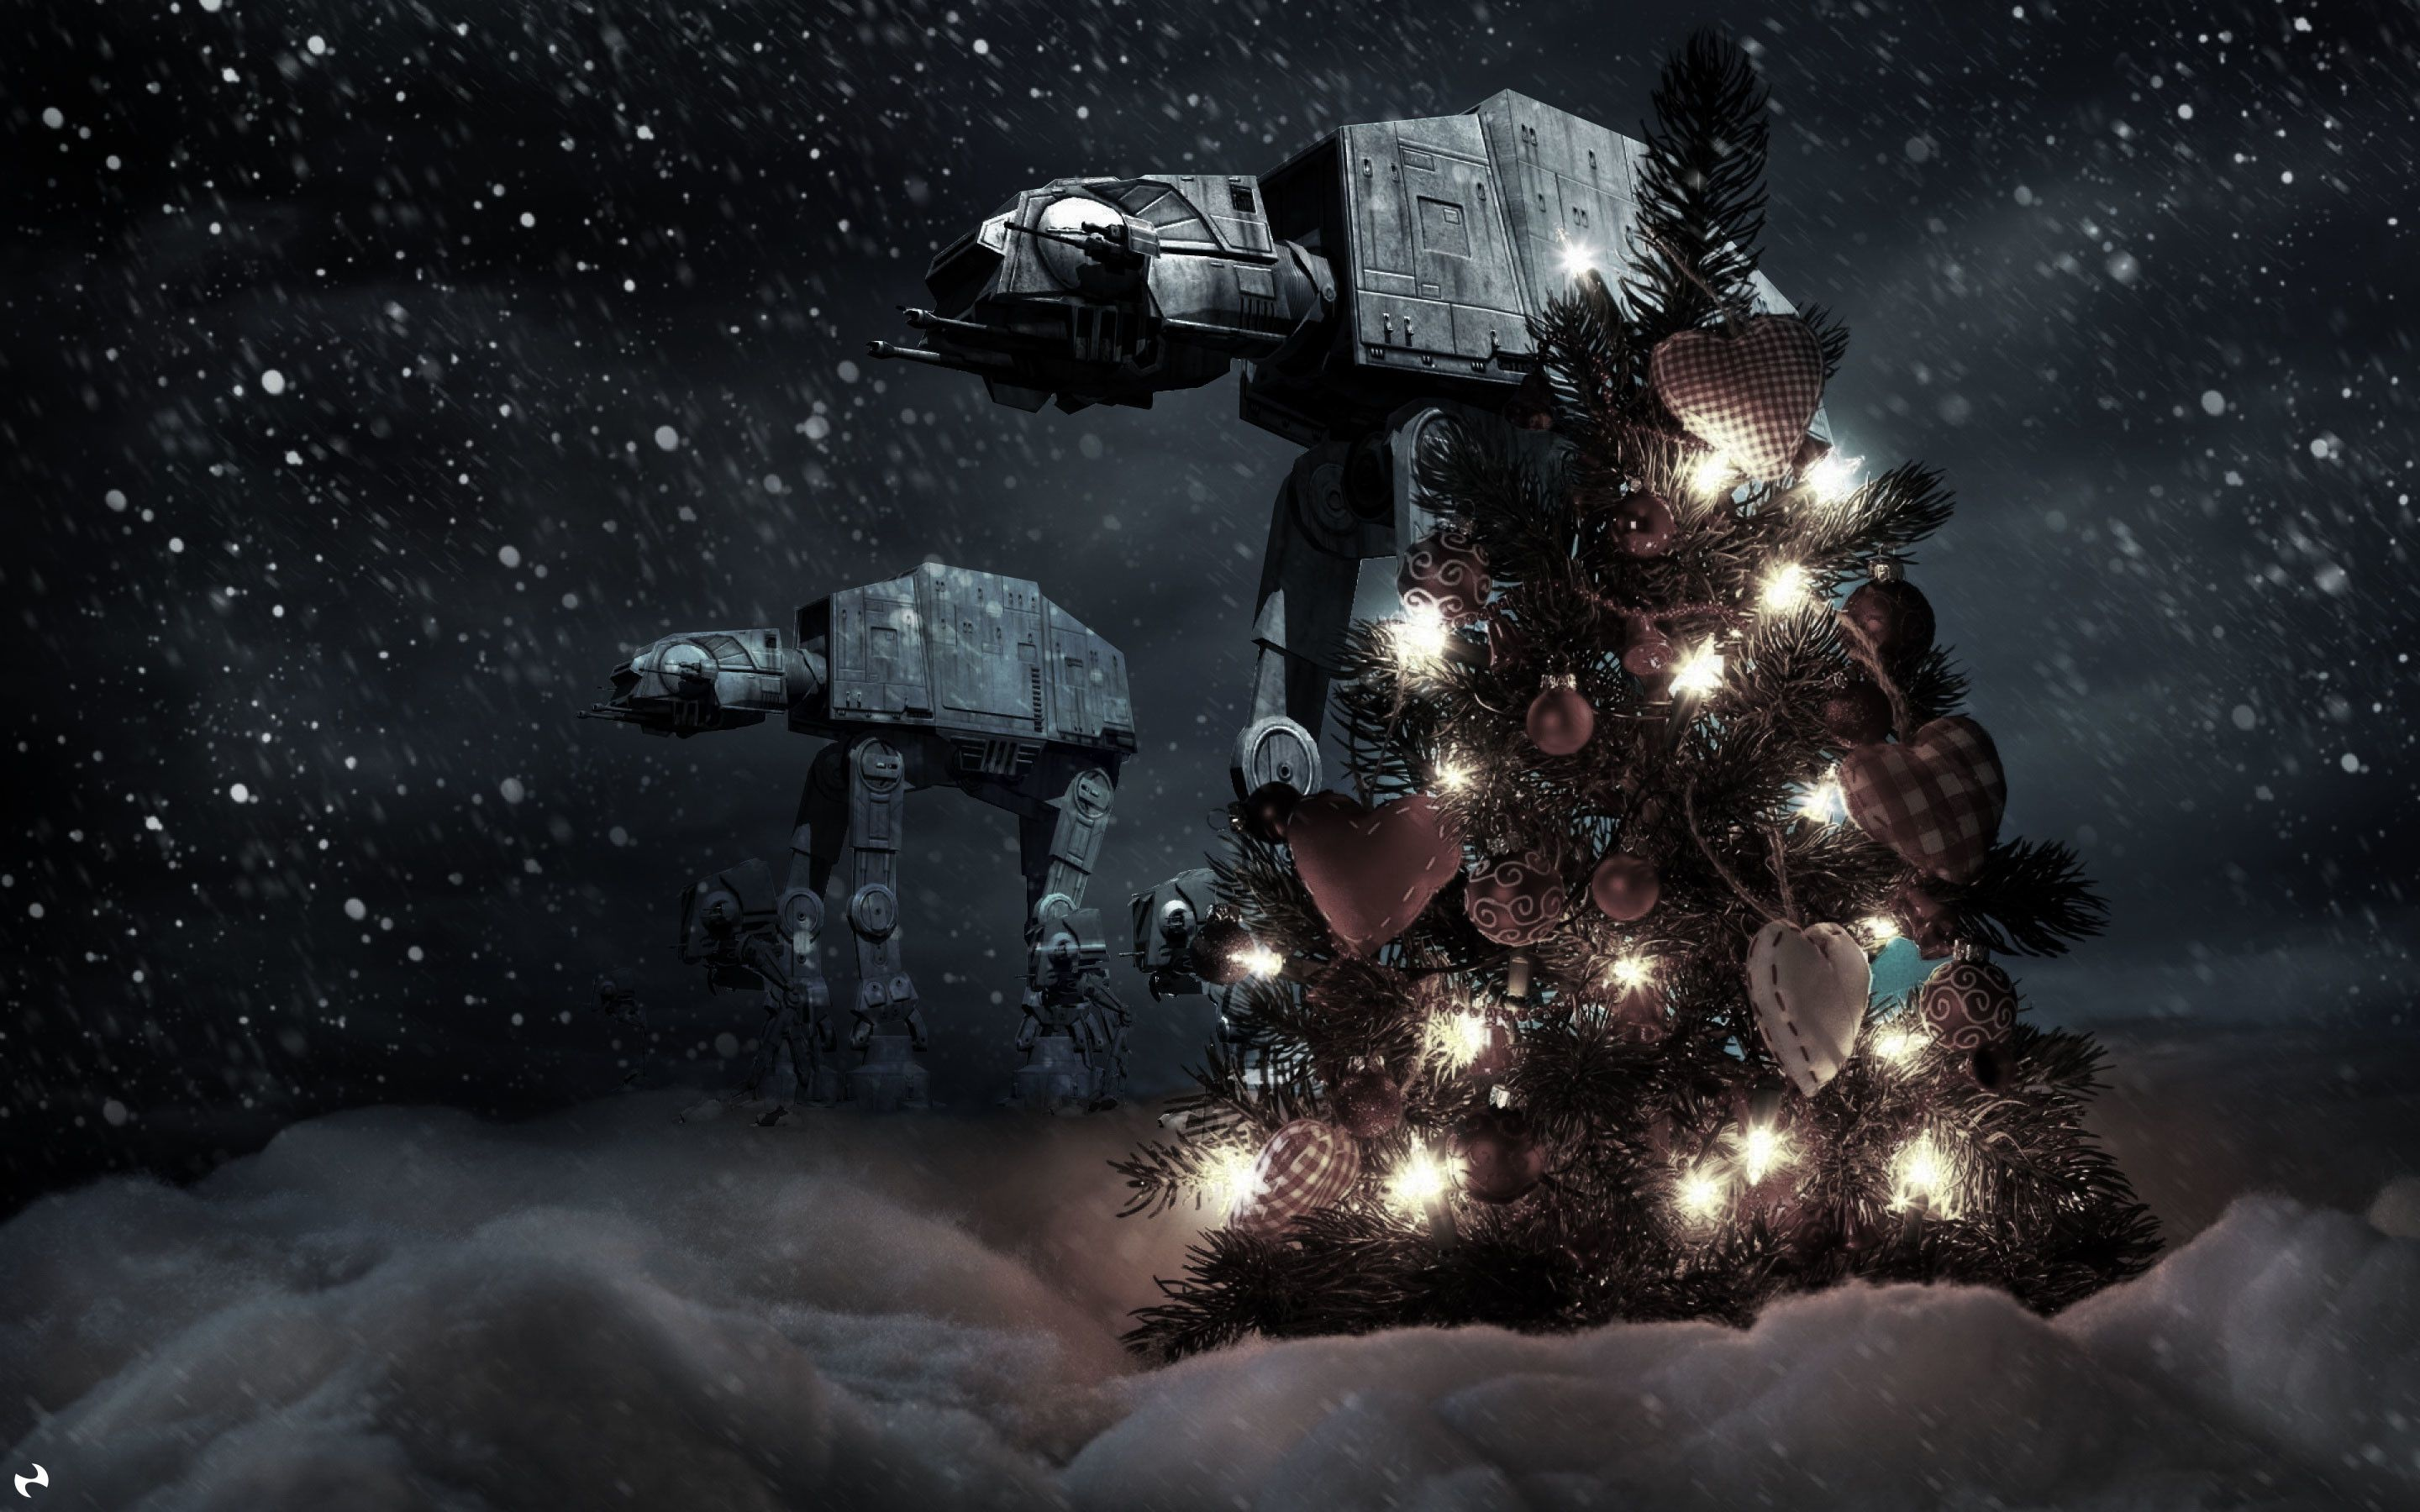 2880x1800 Star Wars Christmas Wallpaper (67+ images)